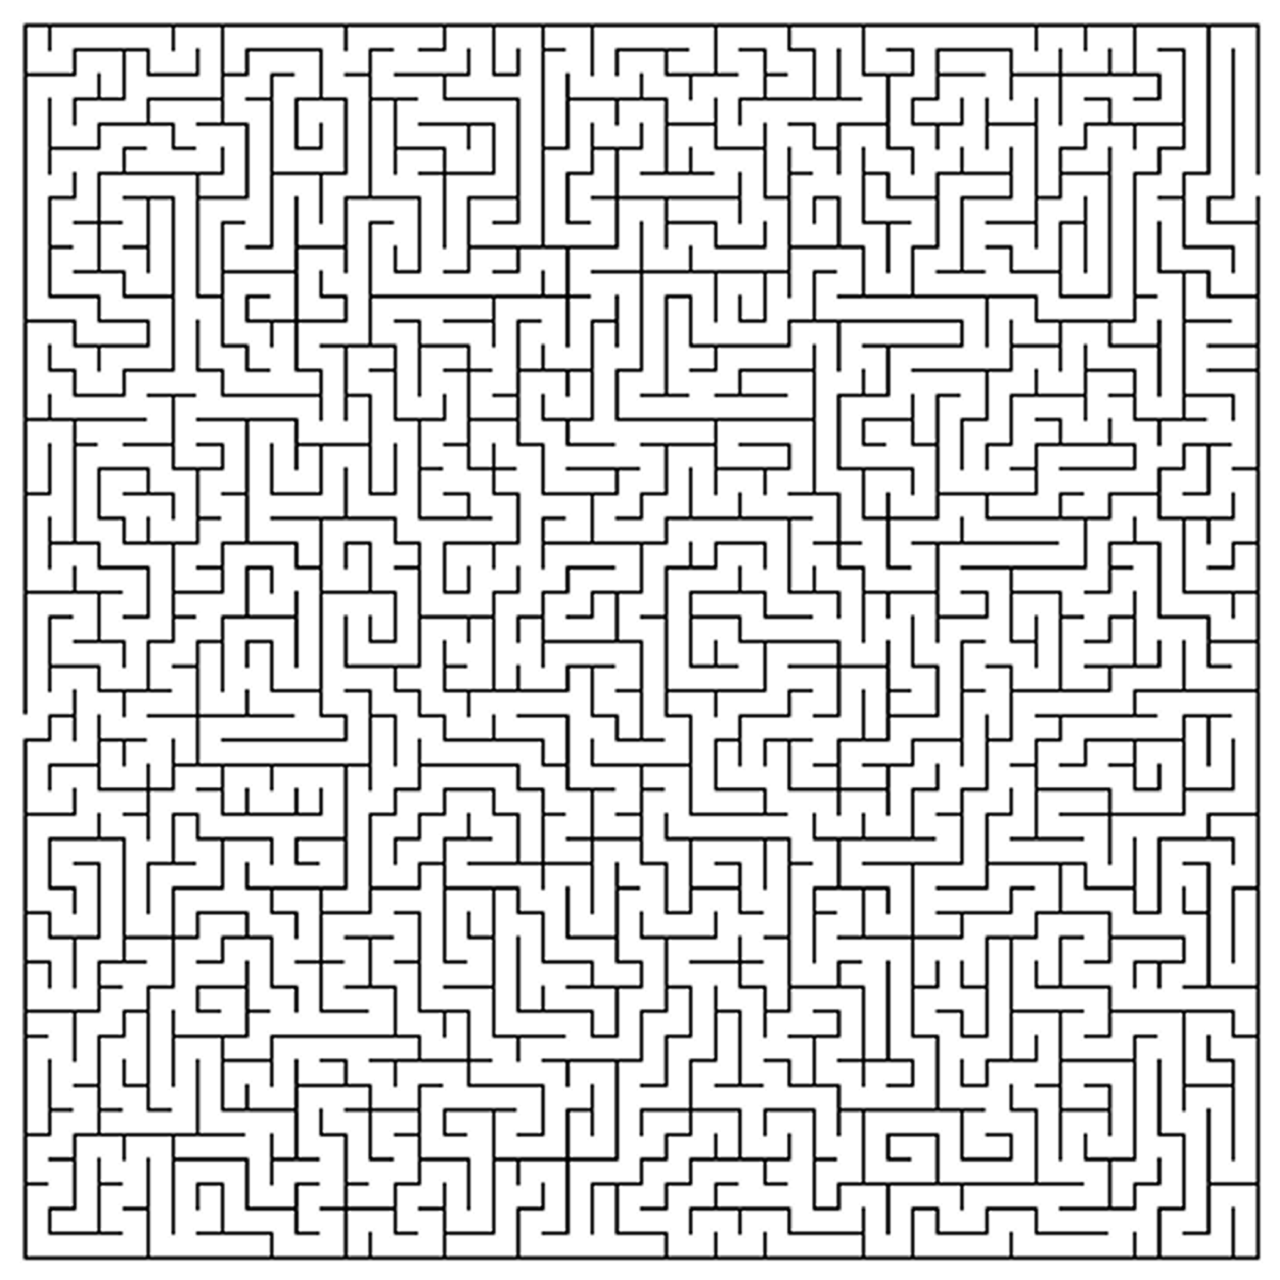 Pin By Barb Polenski On Mazes